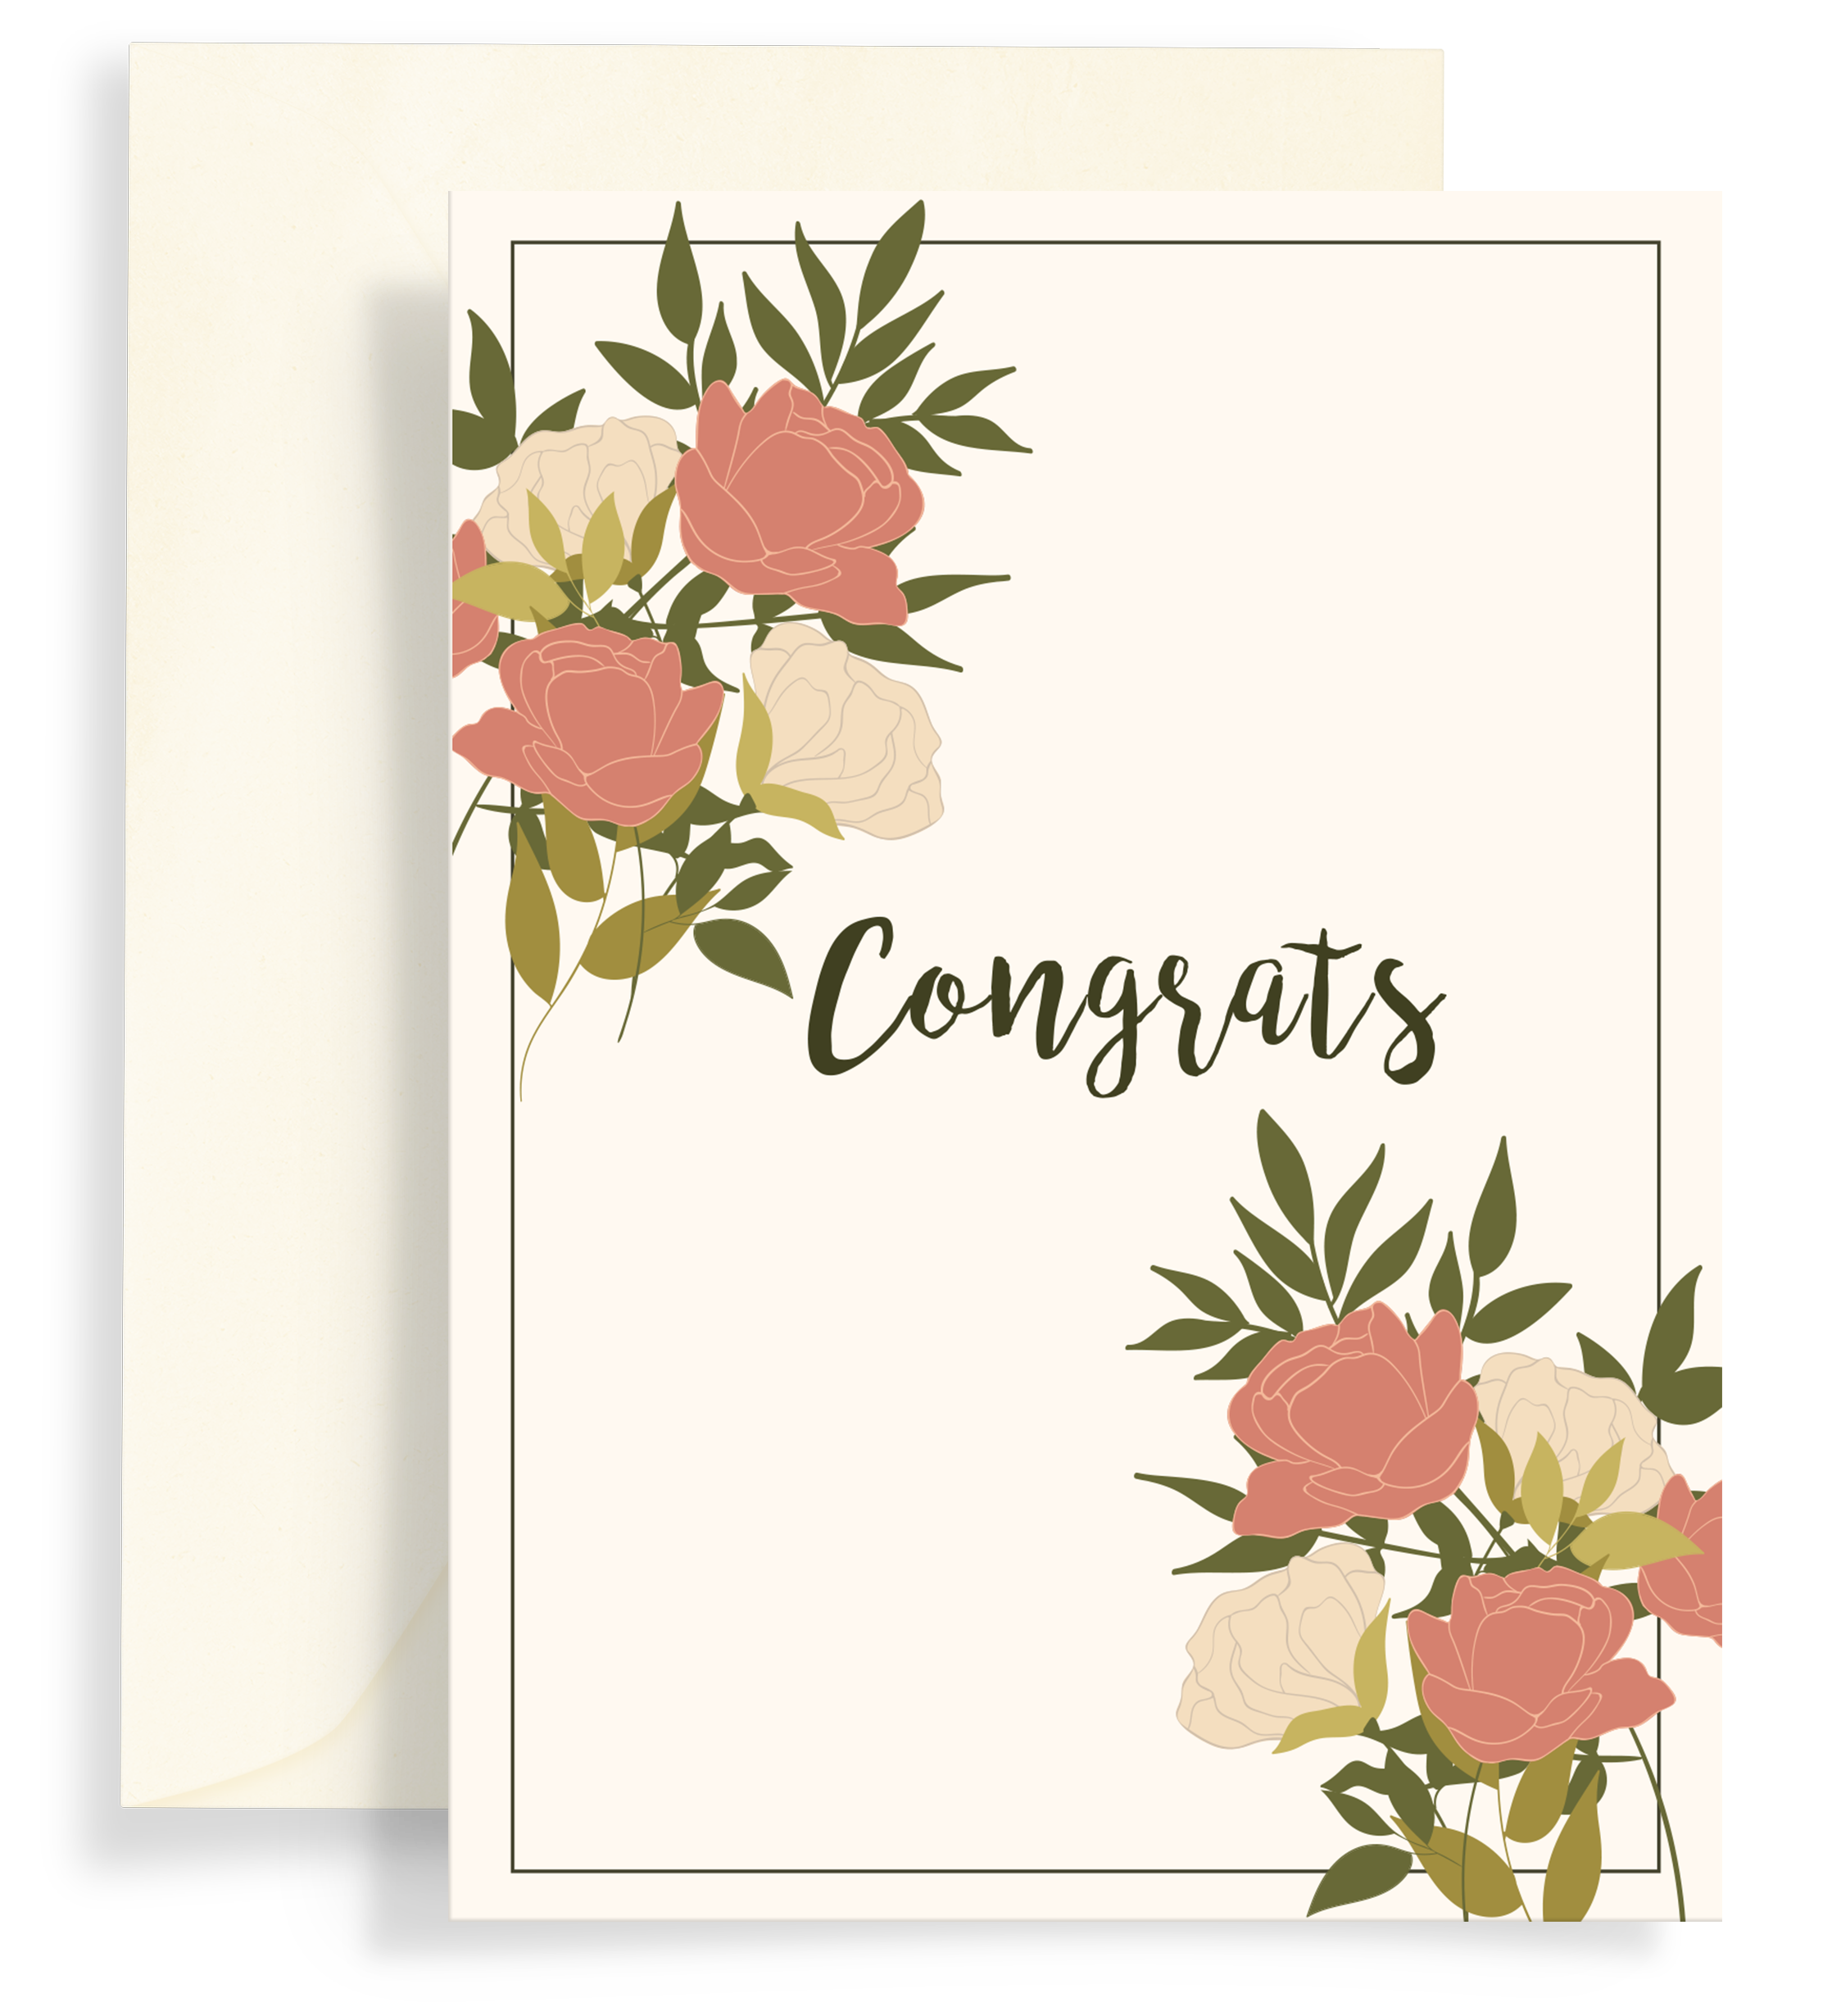 Illustrated greeting card with a beautiful rose bouquet design on a cream background. Text says 'Congrats""